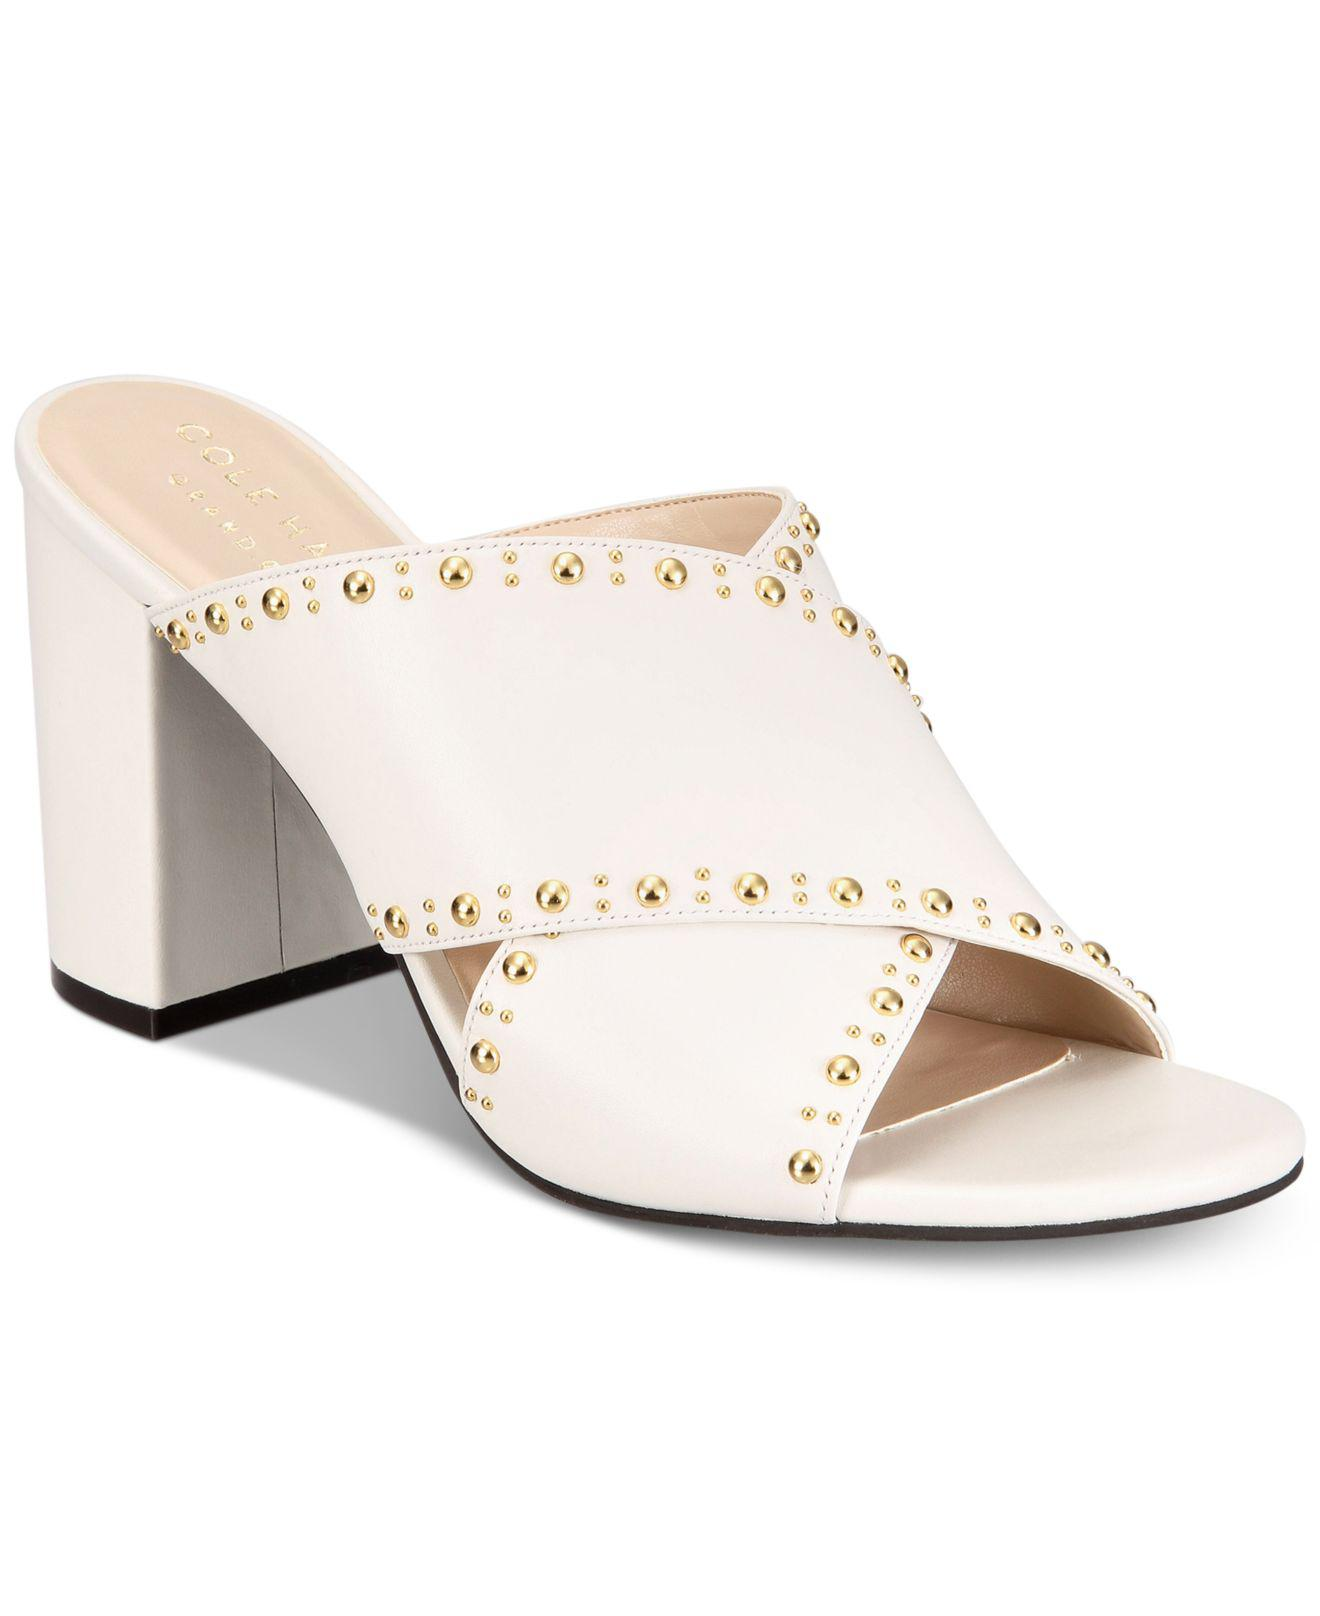 c0e199eb229 Lyst - Cole Haan Women s Gabby Stud Sandals in White